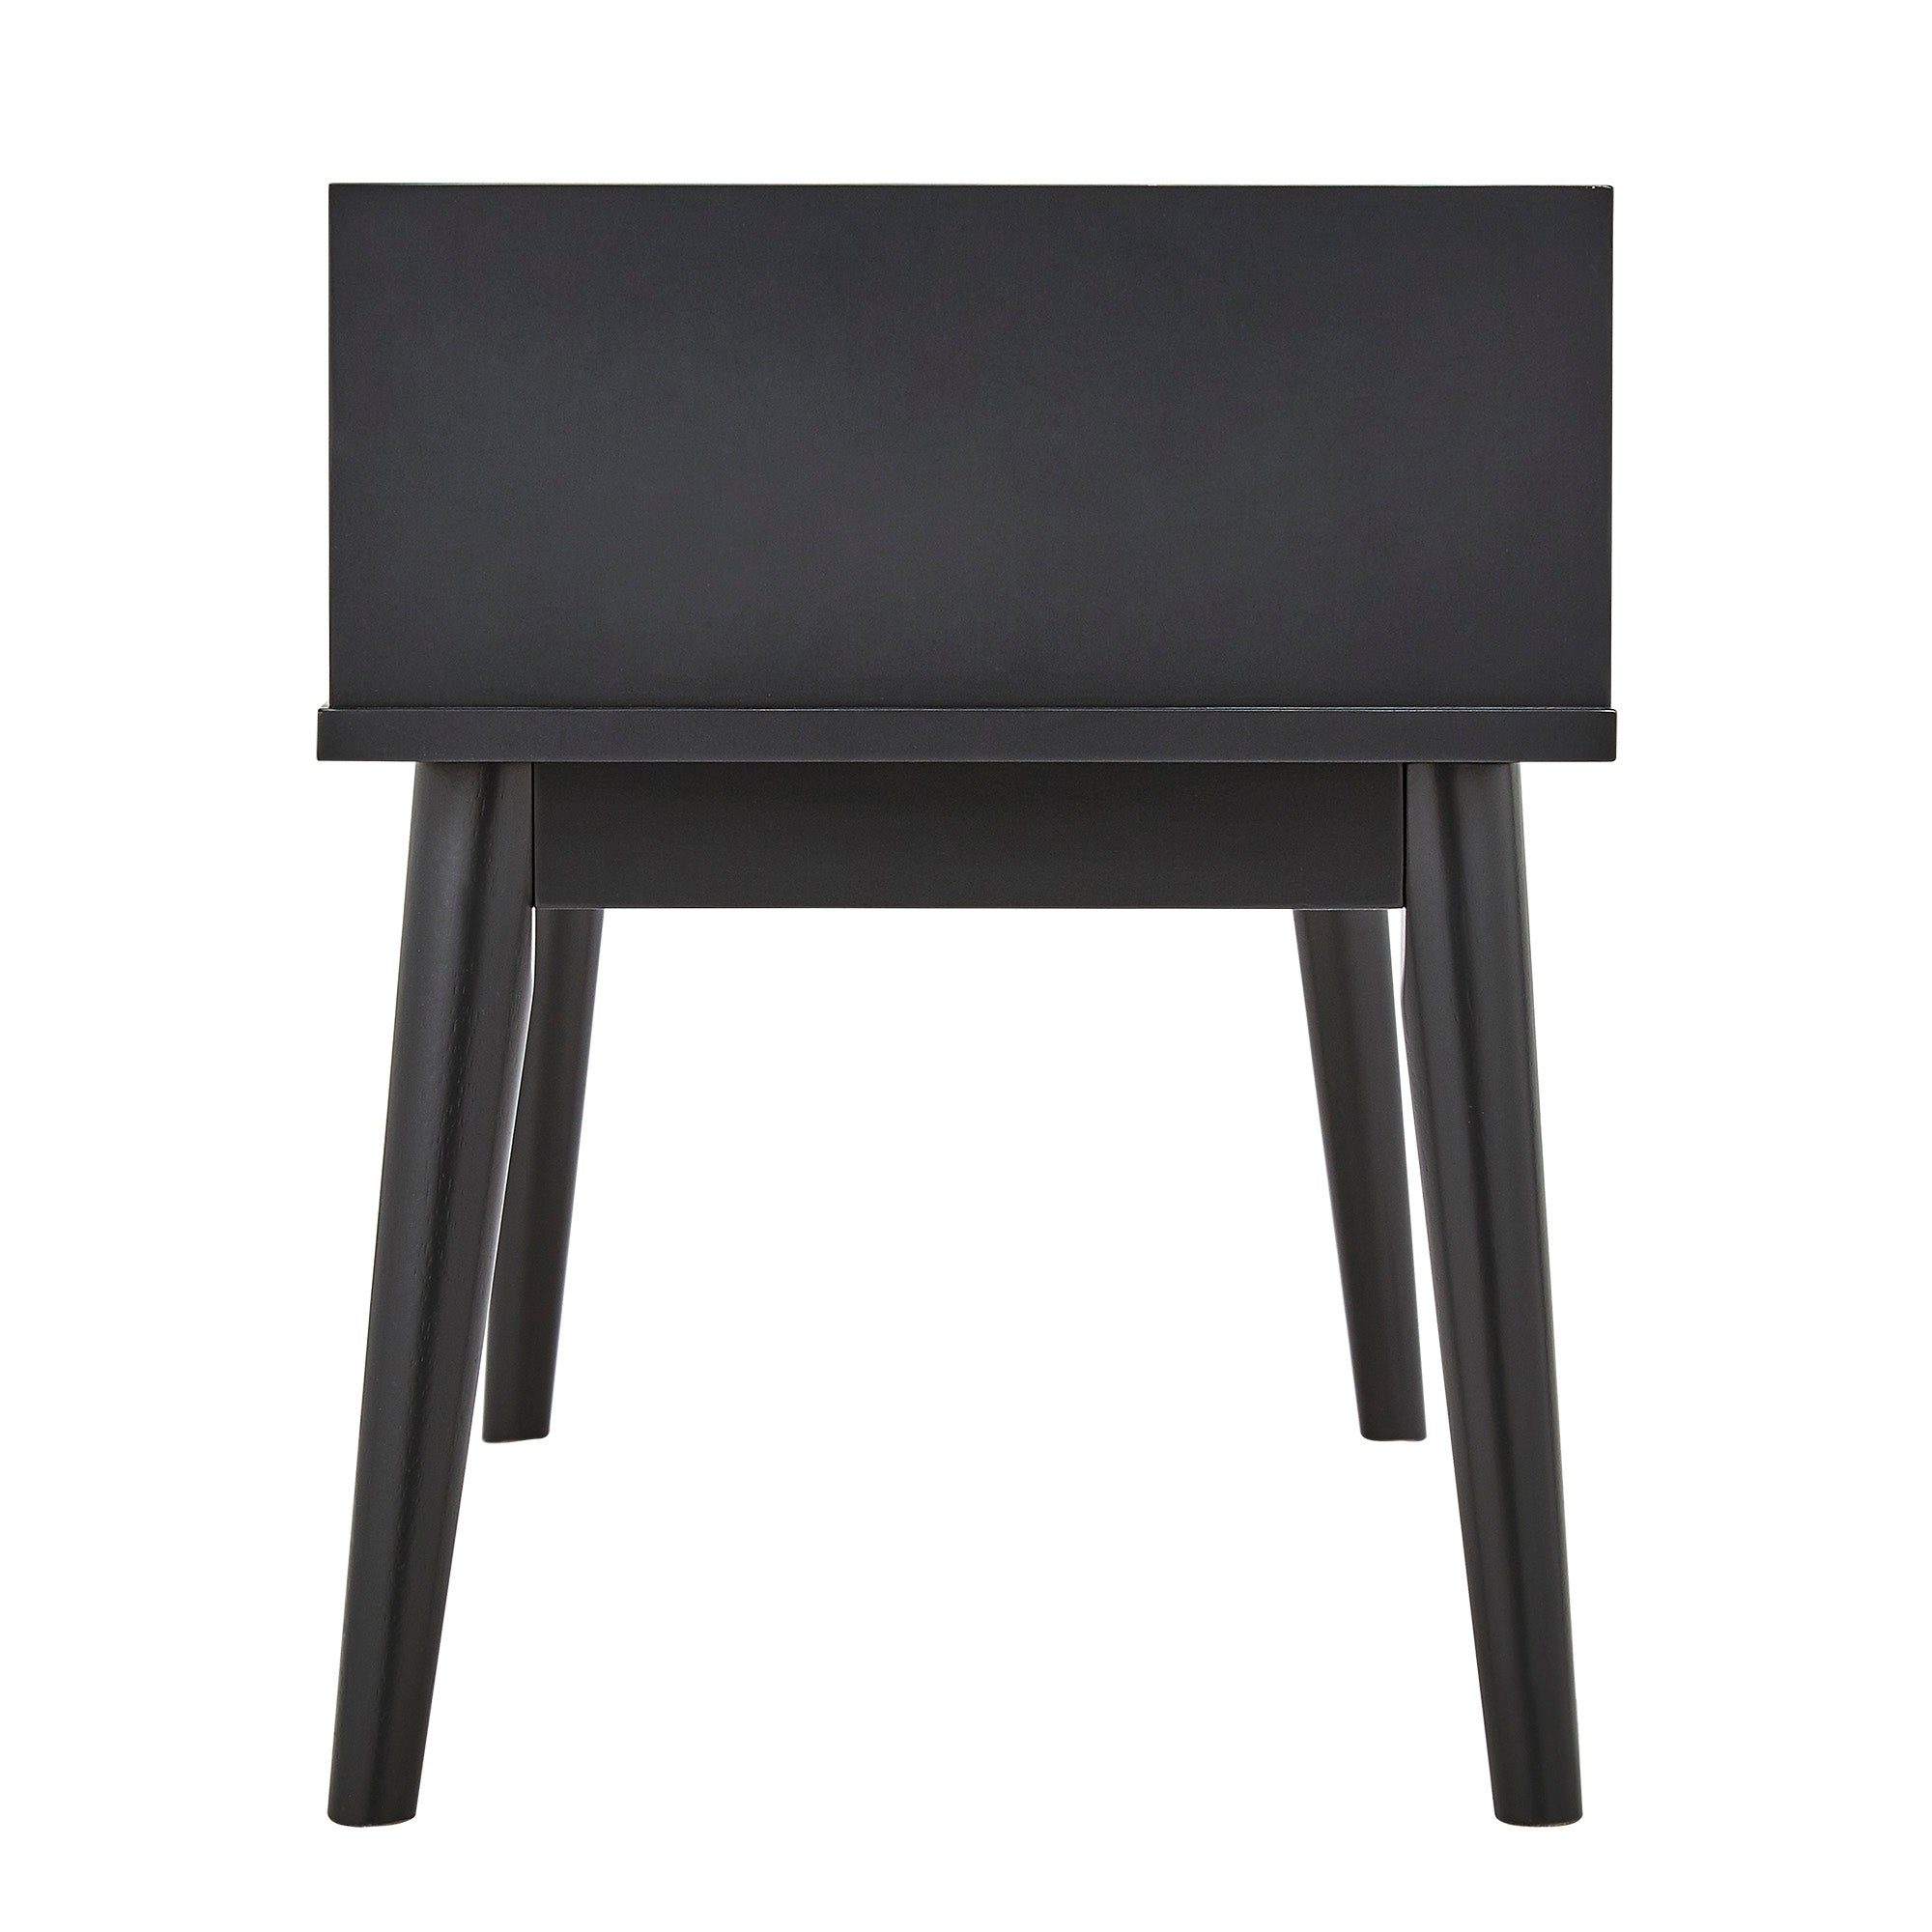 1-Drawer Cushioned Entryway Bench - Vulcan Black